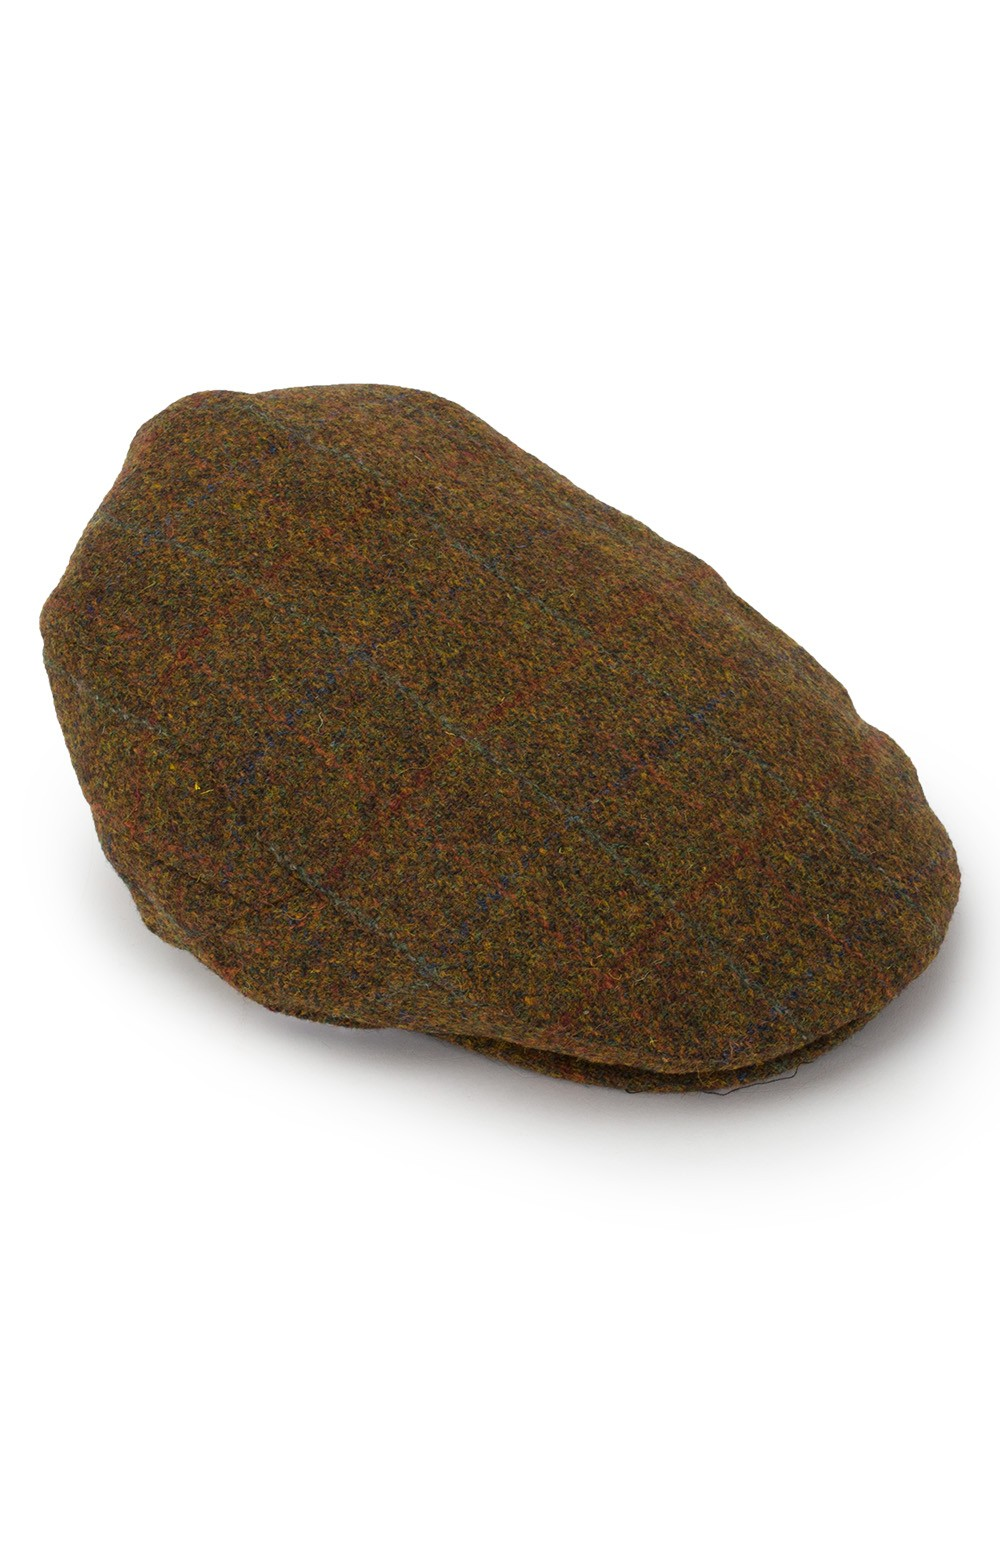 08138630a22 Harris Tweed Cap - House of Bruar